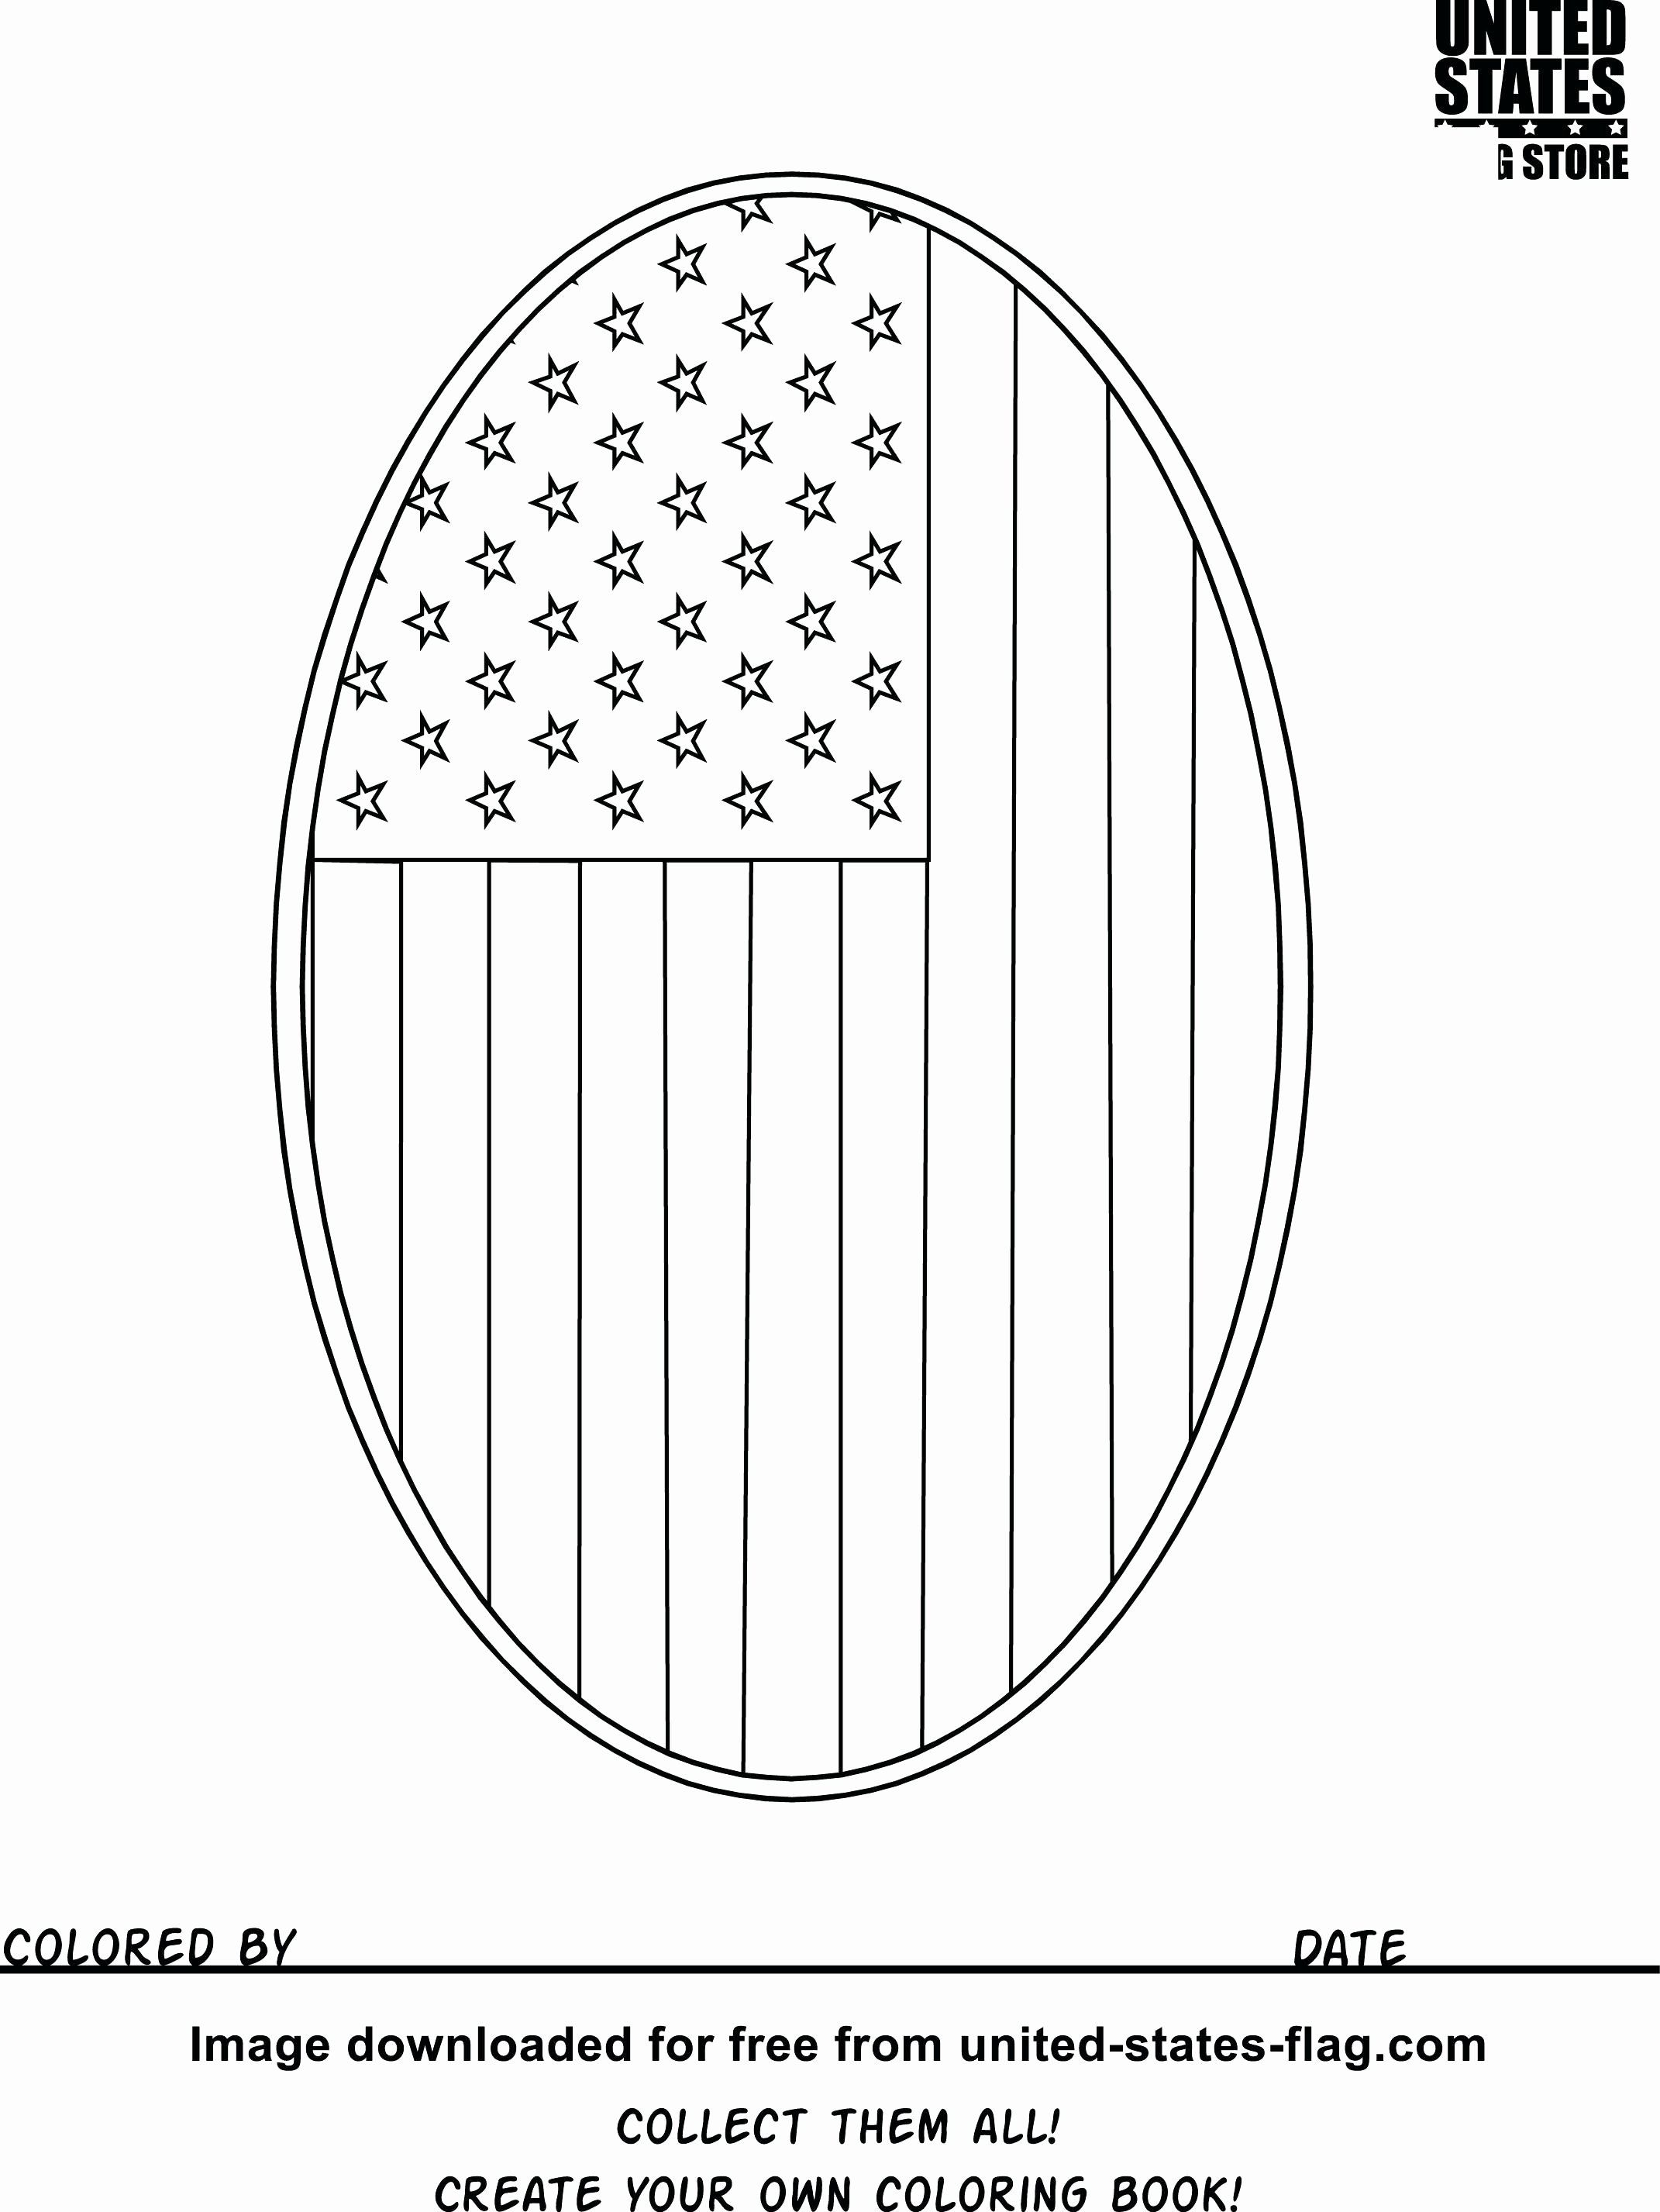 Afghanistan Flag Coloring Page Luxury Country Flag Coloring Sheets